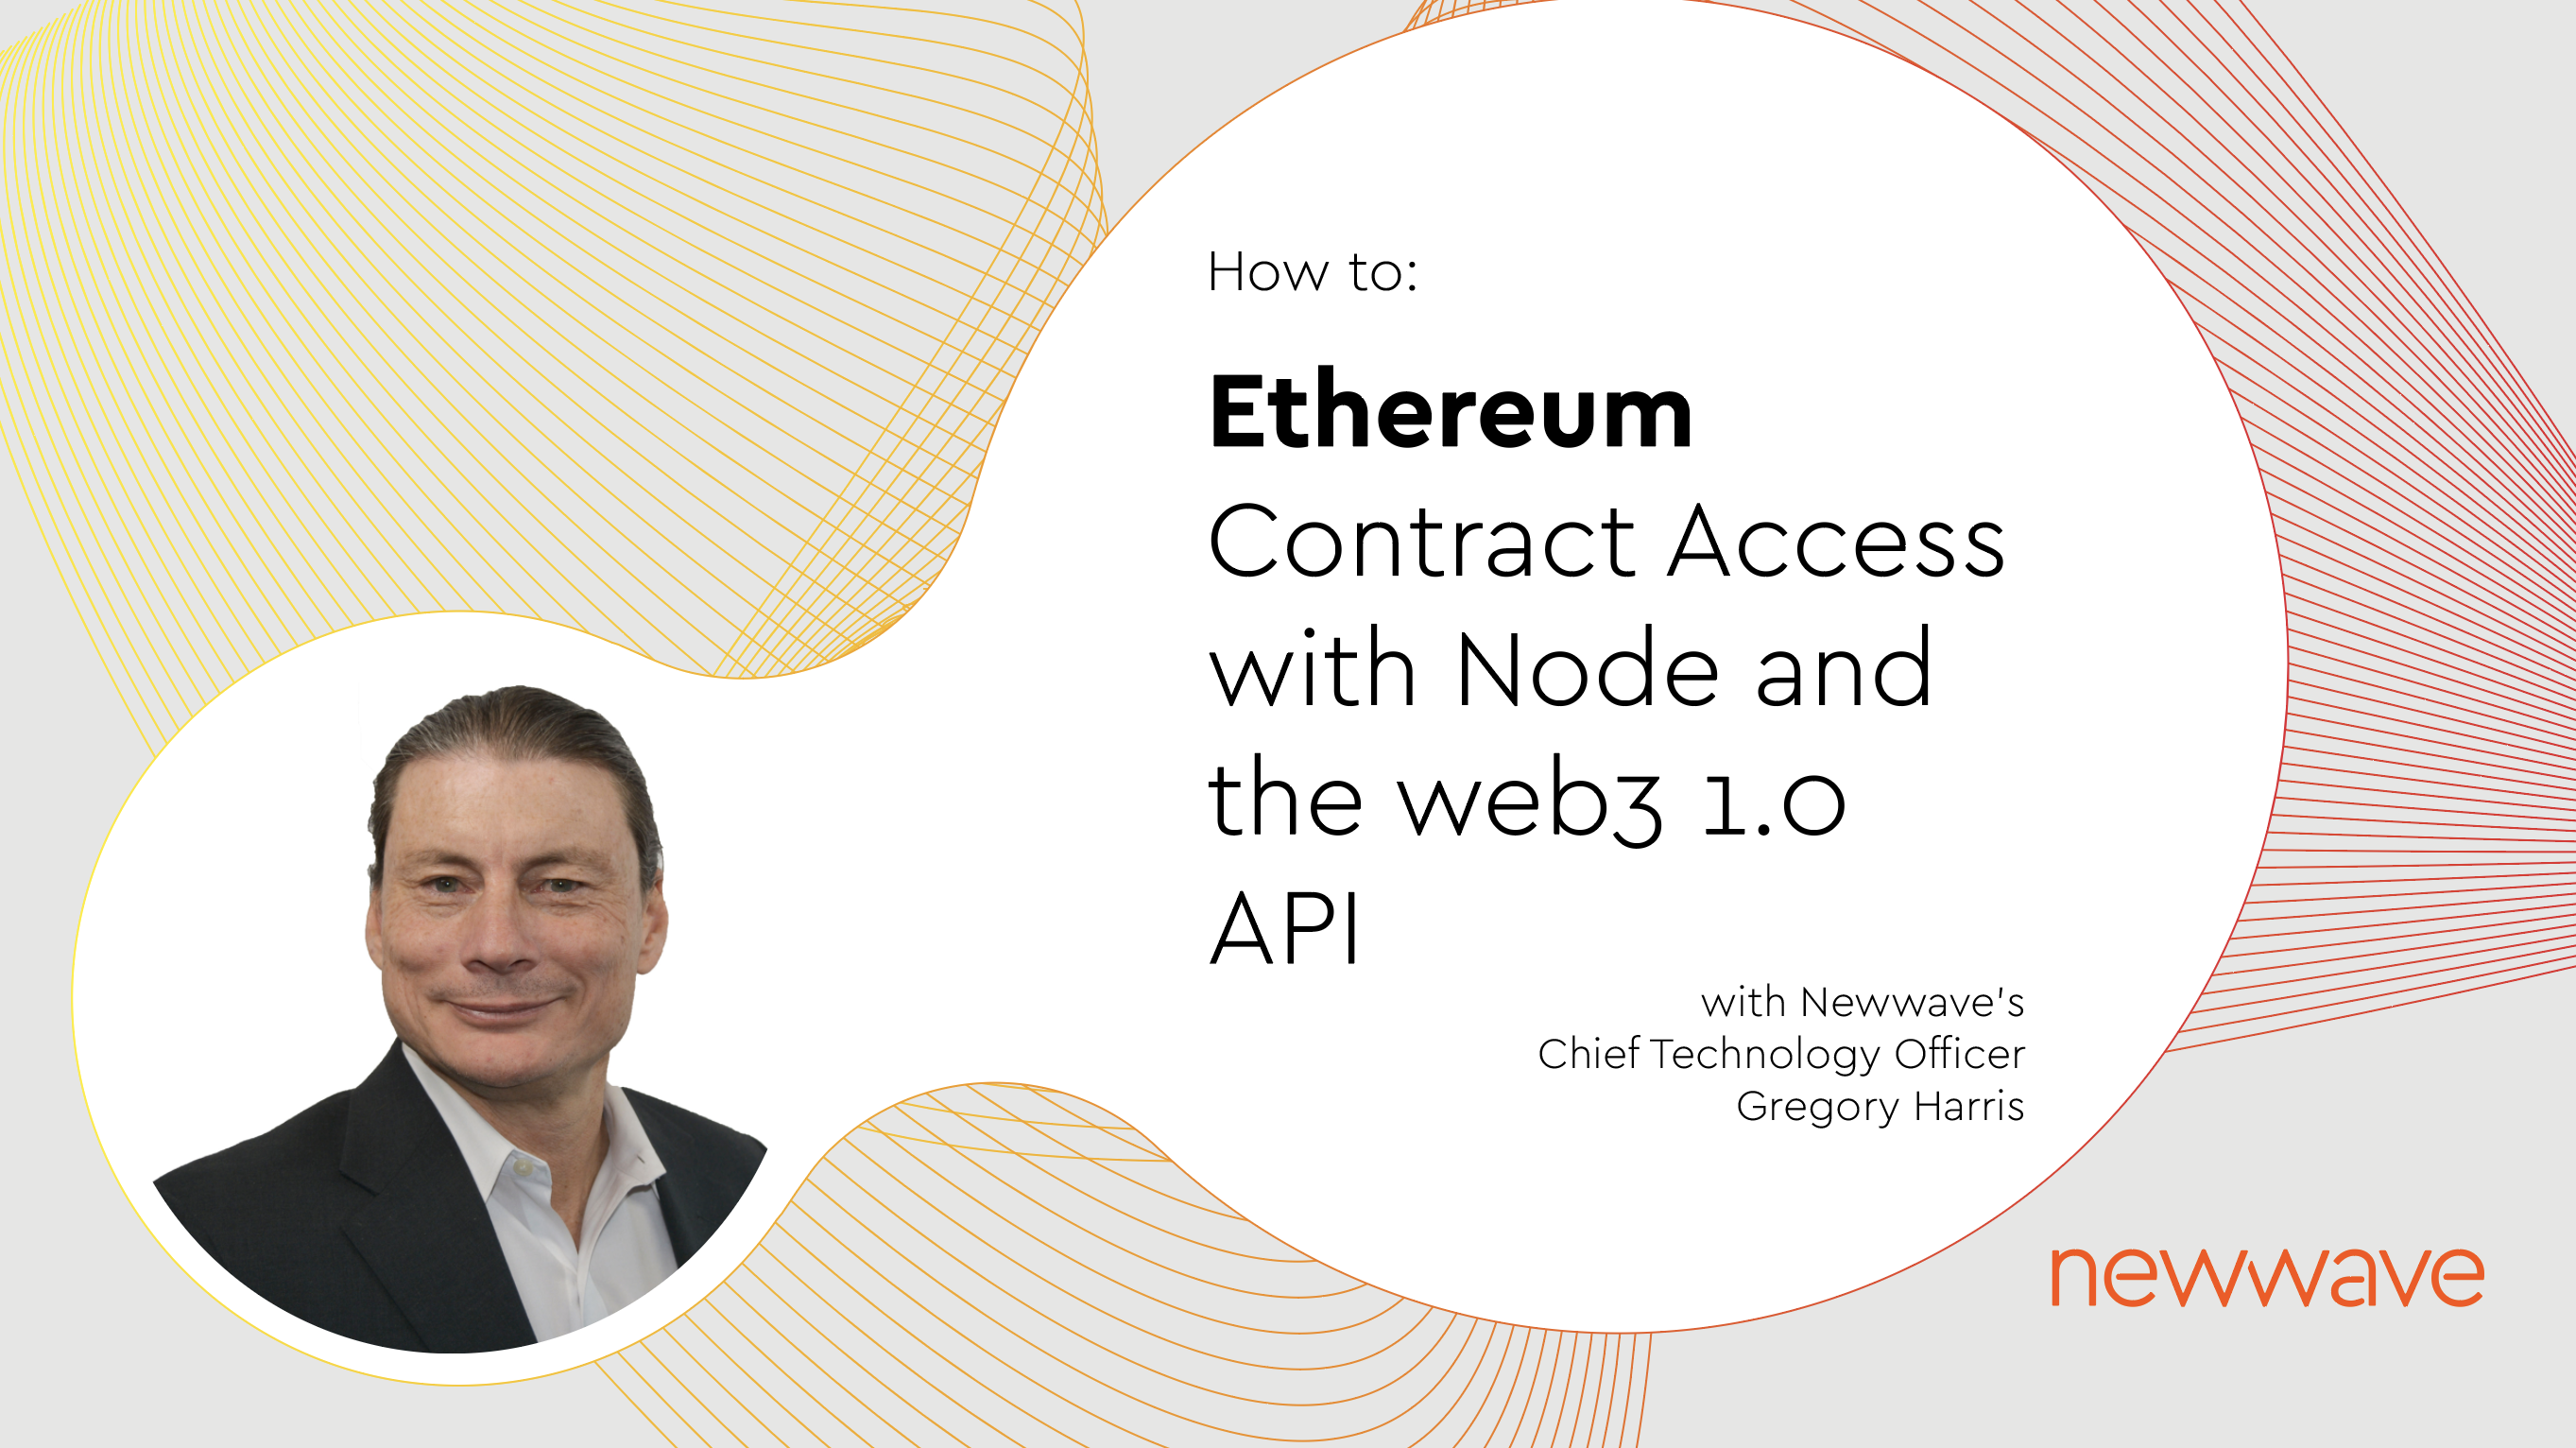 Ethereum Contract Access